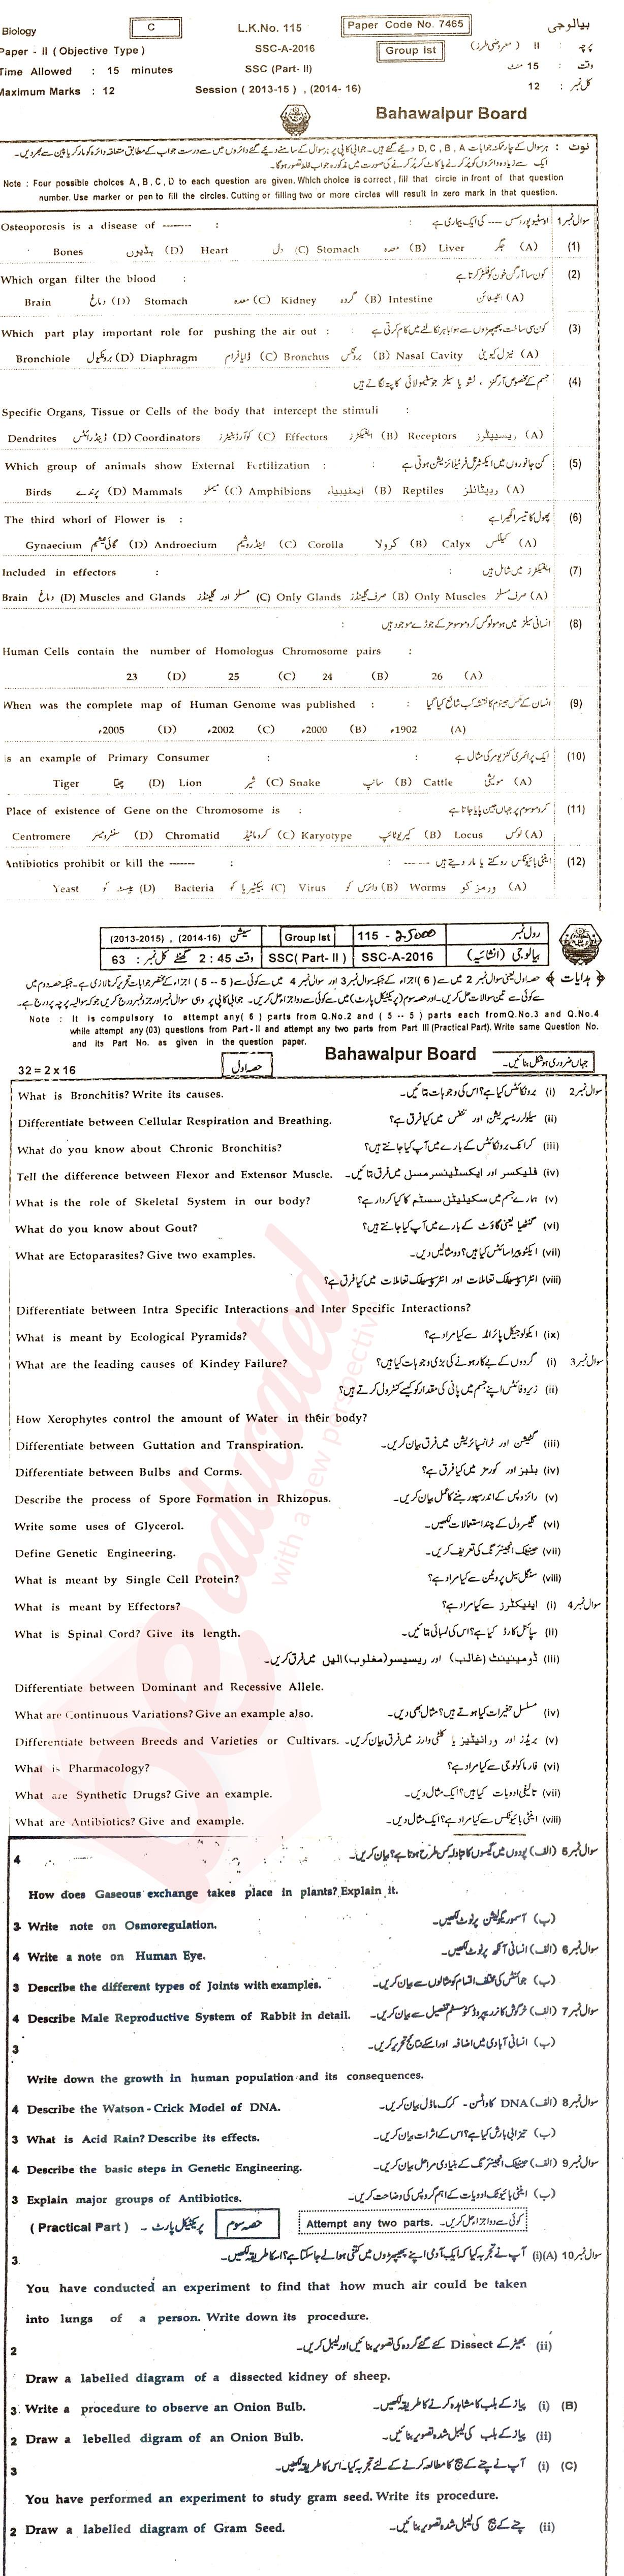 Biology 10th class Past Paper Group 1 BISE Bahawalpur 2016